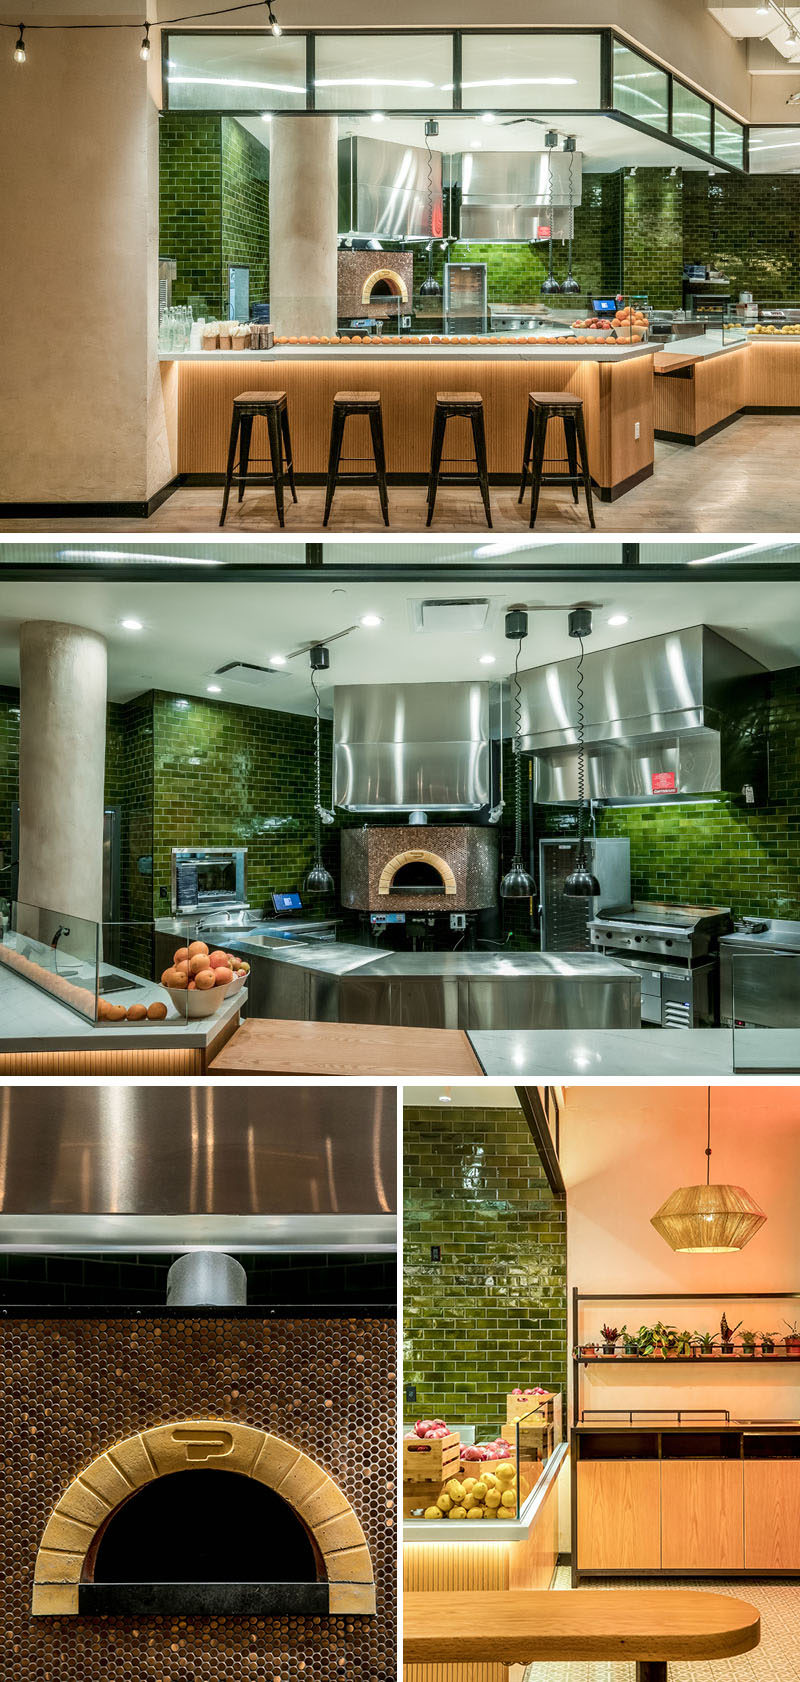 "This modern restaurant has an open kitchen layout and a copper coated Taboon Oven that acts as a focal point. The kitchen's backsplash is covered in Emerald Clear Moresque tiles, with quartz ""ZODIAQ"" London Sky countertops, and tambour wood paneled facades. #ModernRestaurant #GreenTiles"